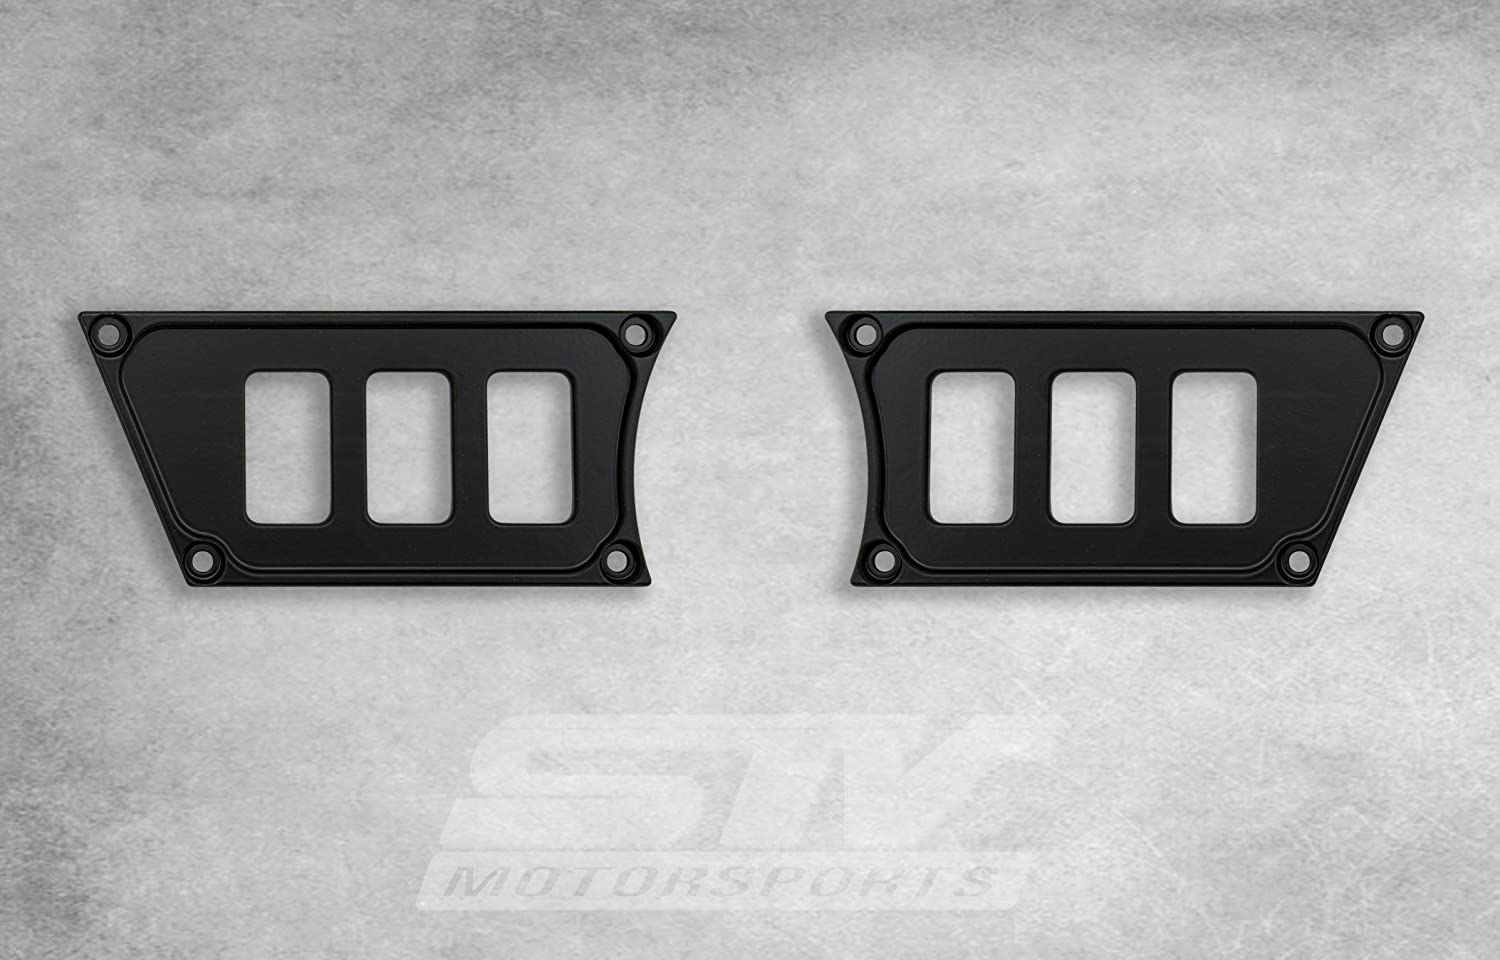 Aluminum Black Dash Panel Polaris w//6 Switches For 2015 Polaris RZR XP 900 no switches included STVMotorsports